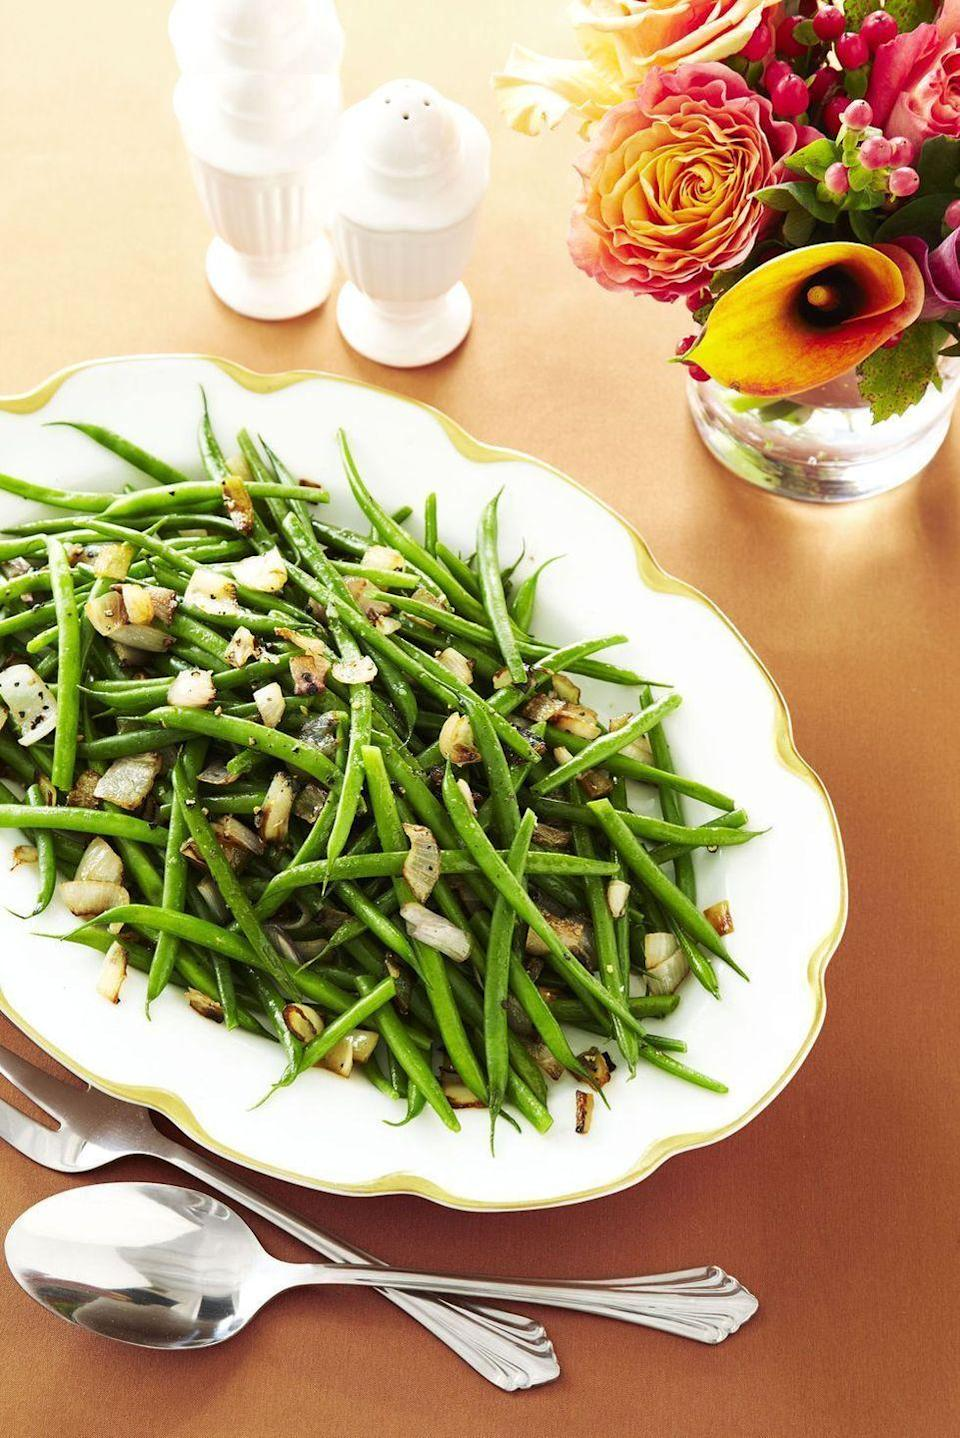 """<p>This simple side is an easy way to keep your green beans vegan this Thanksgiving. Simply use margarine instead of butter and no one will be the wiser!</p><p><em><a href=""""https://www.goodhousekeeping.com/food-recipes/a9458/green-beans-shallots-thanksgiving-recipes/"""" rel=""""nofollow noopener"""" target=""""_blank"""" data-ylk=""""slk:Get the recipe for Green Beans with Shallots »"""" class=""""link rapid-noclick-resp"""">Get the recipe for Green Beans with Shallots »</a></em> </p>"""